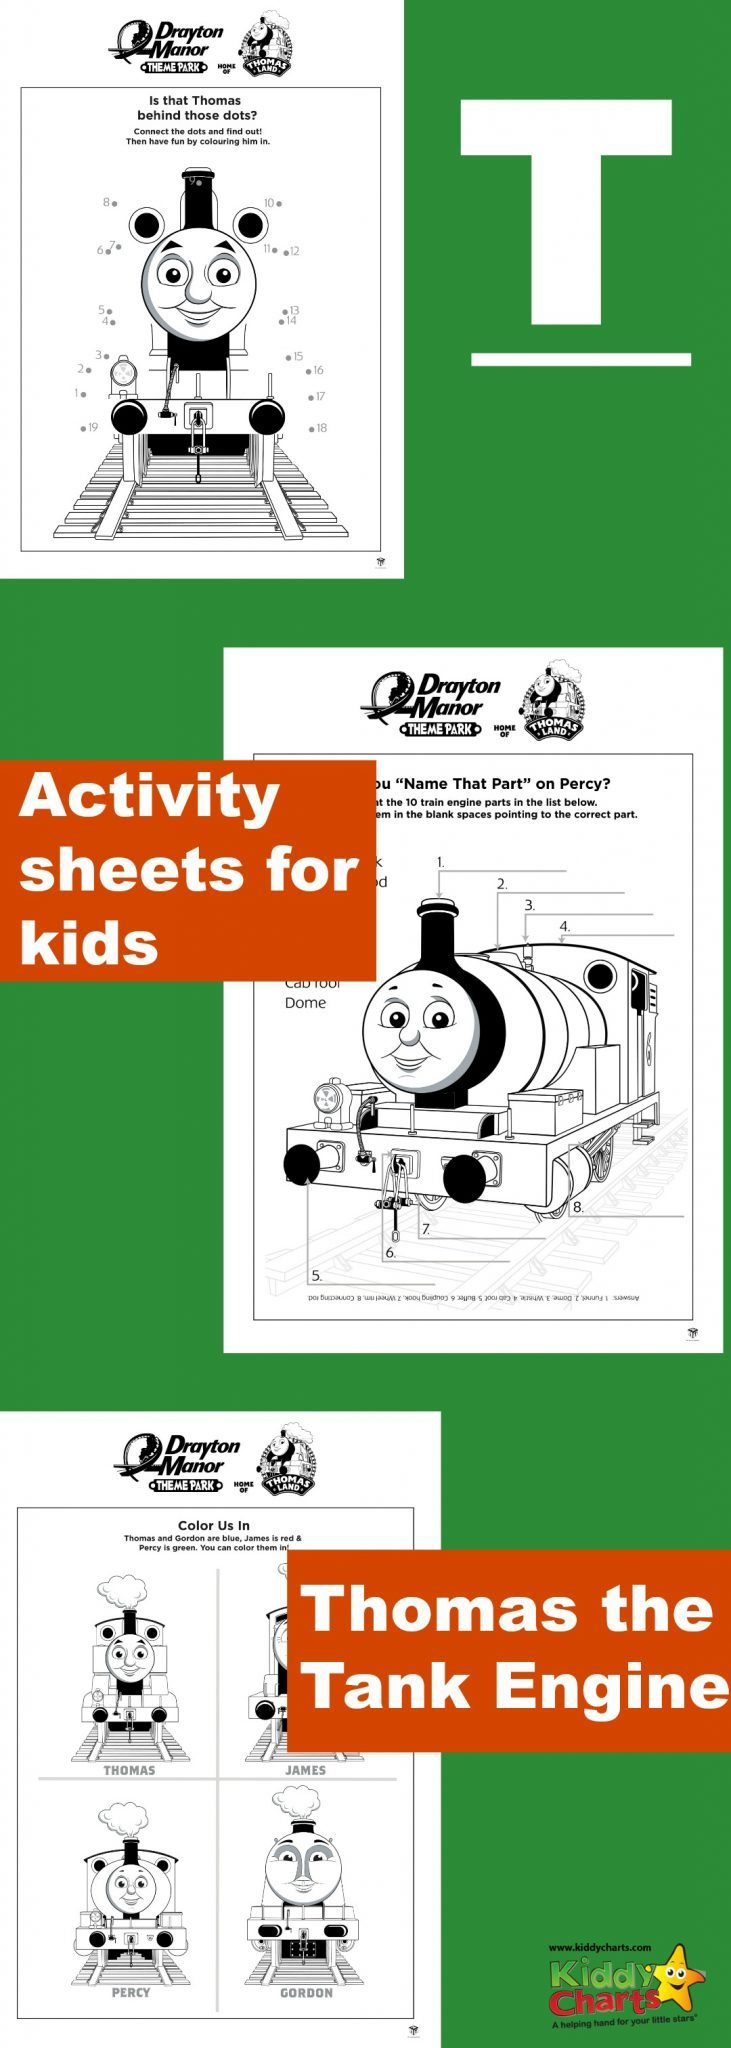 Thomas the tank engine activity sheets for all those train fans out there! #trains #kidscolouring #thomas